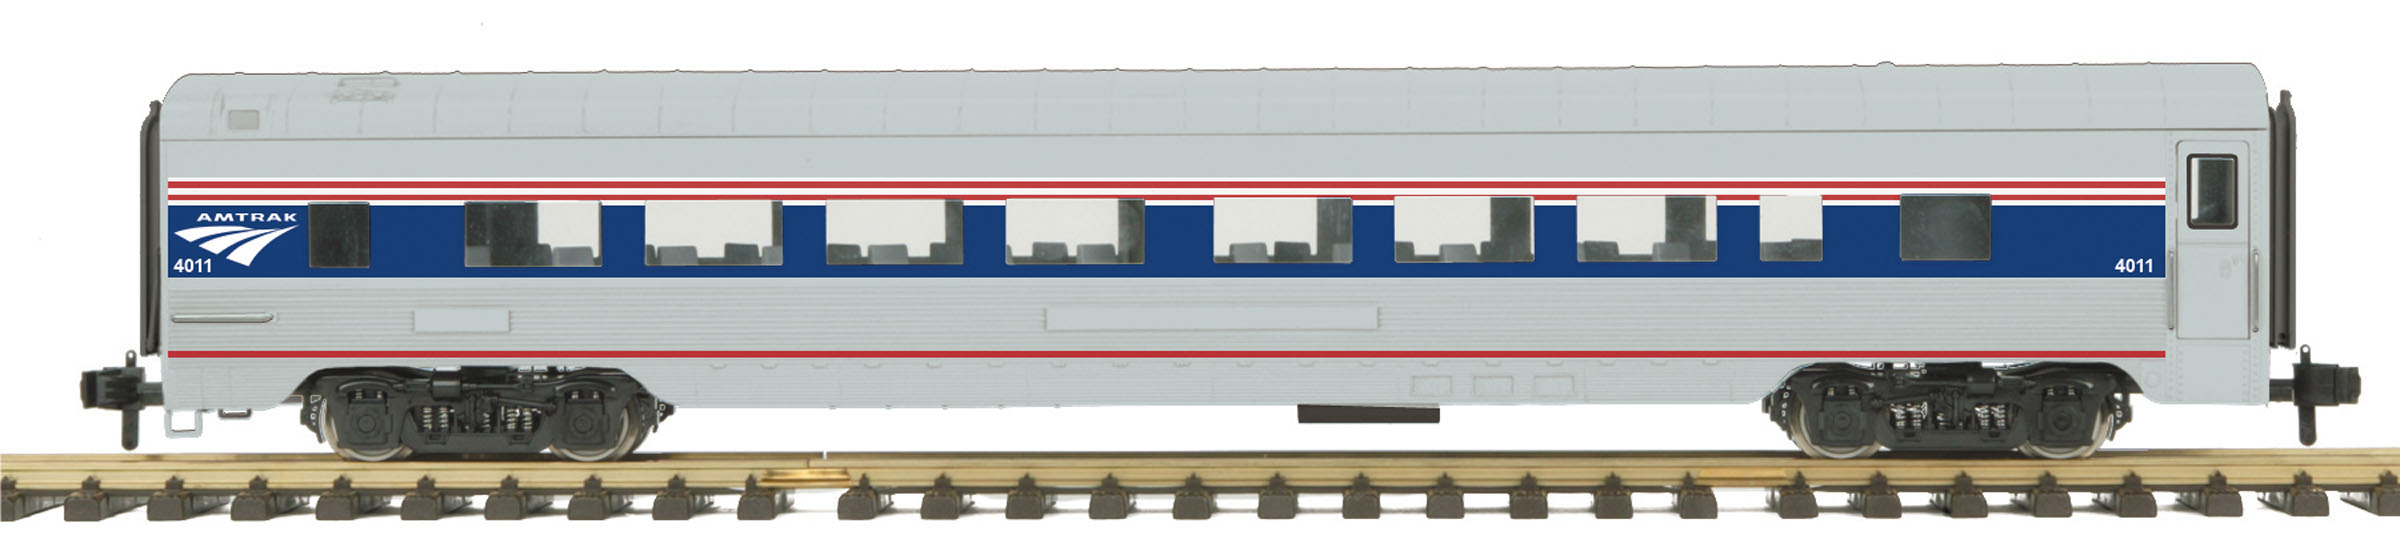 MTH Rail King One Gauge 5 or less In-Stock List | O Gauge